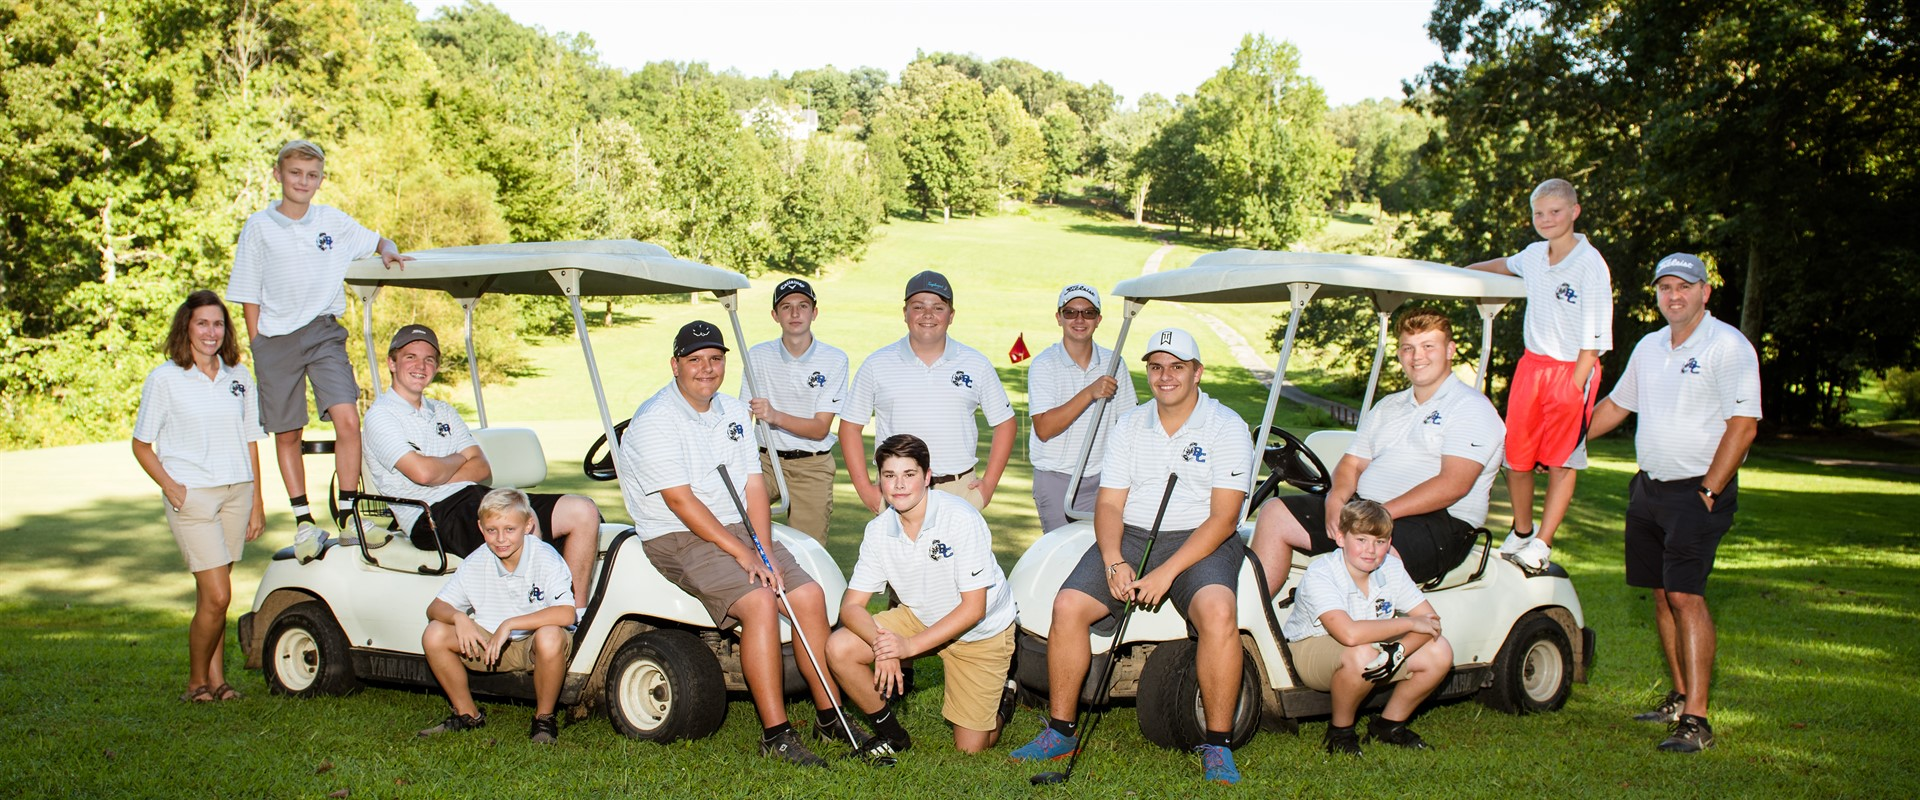 Boys Golf Team 2019